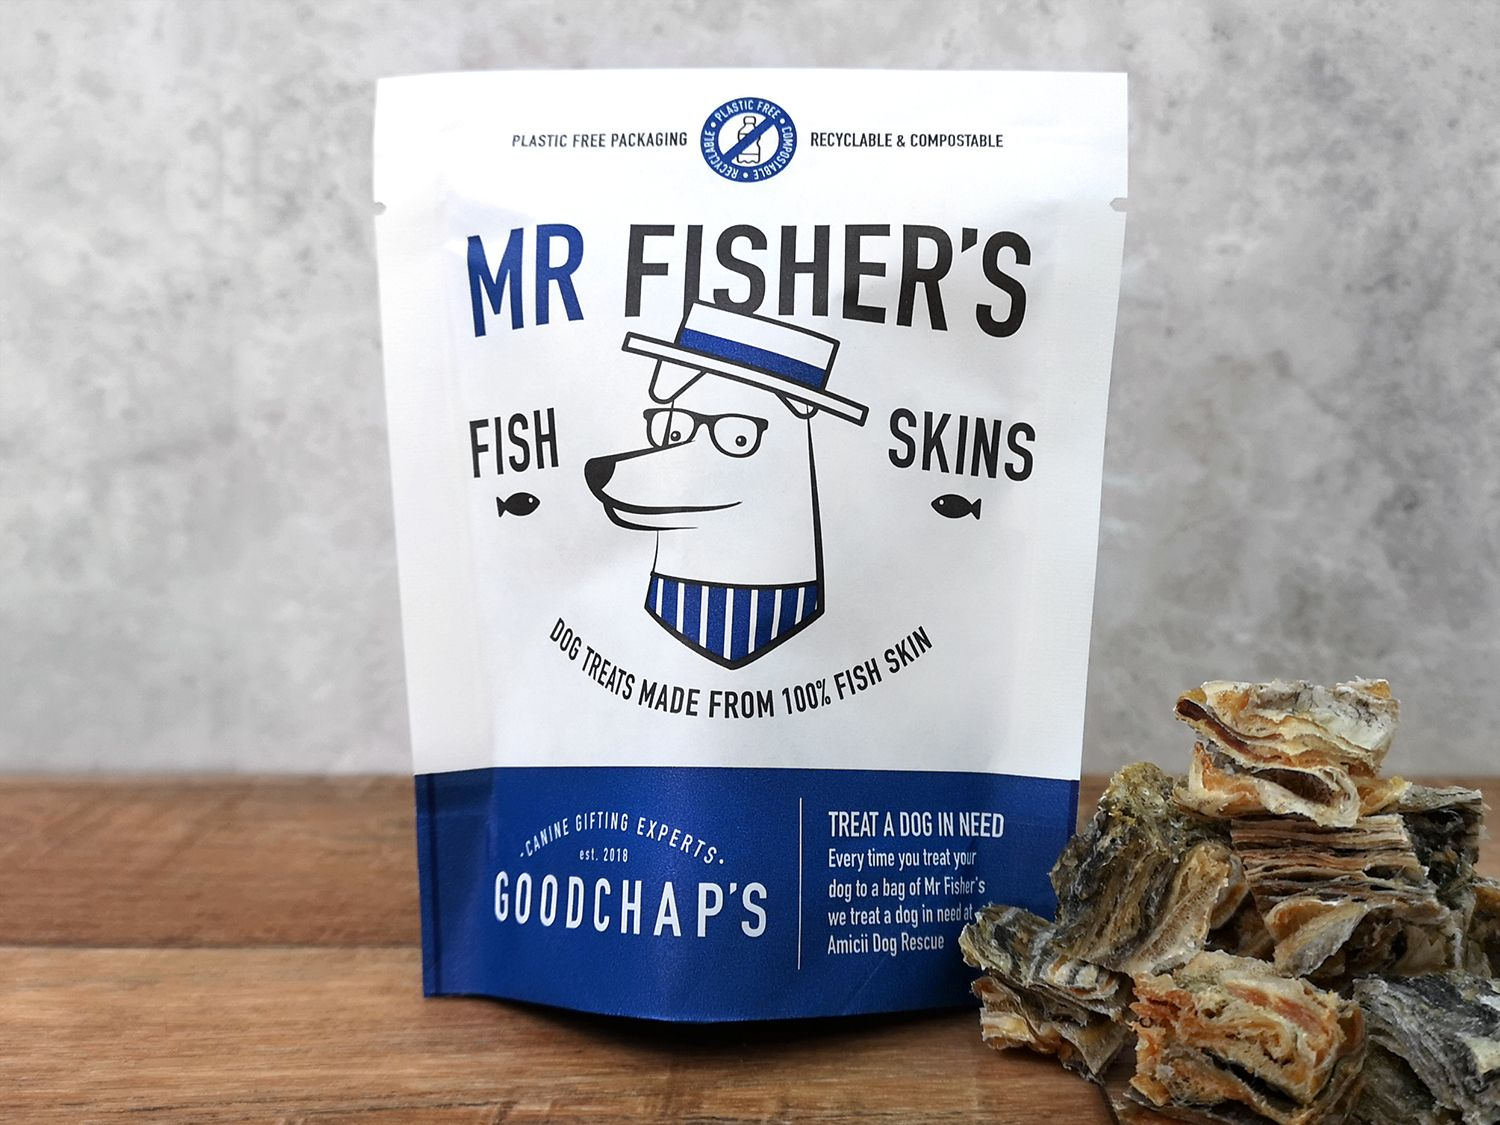 Mr Fisher's Fish skins